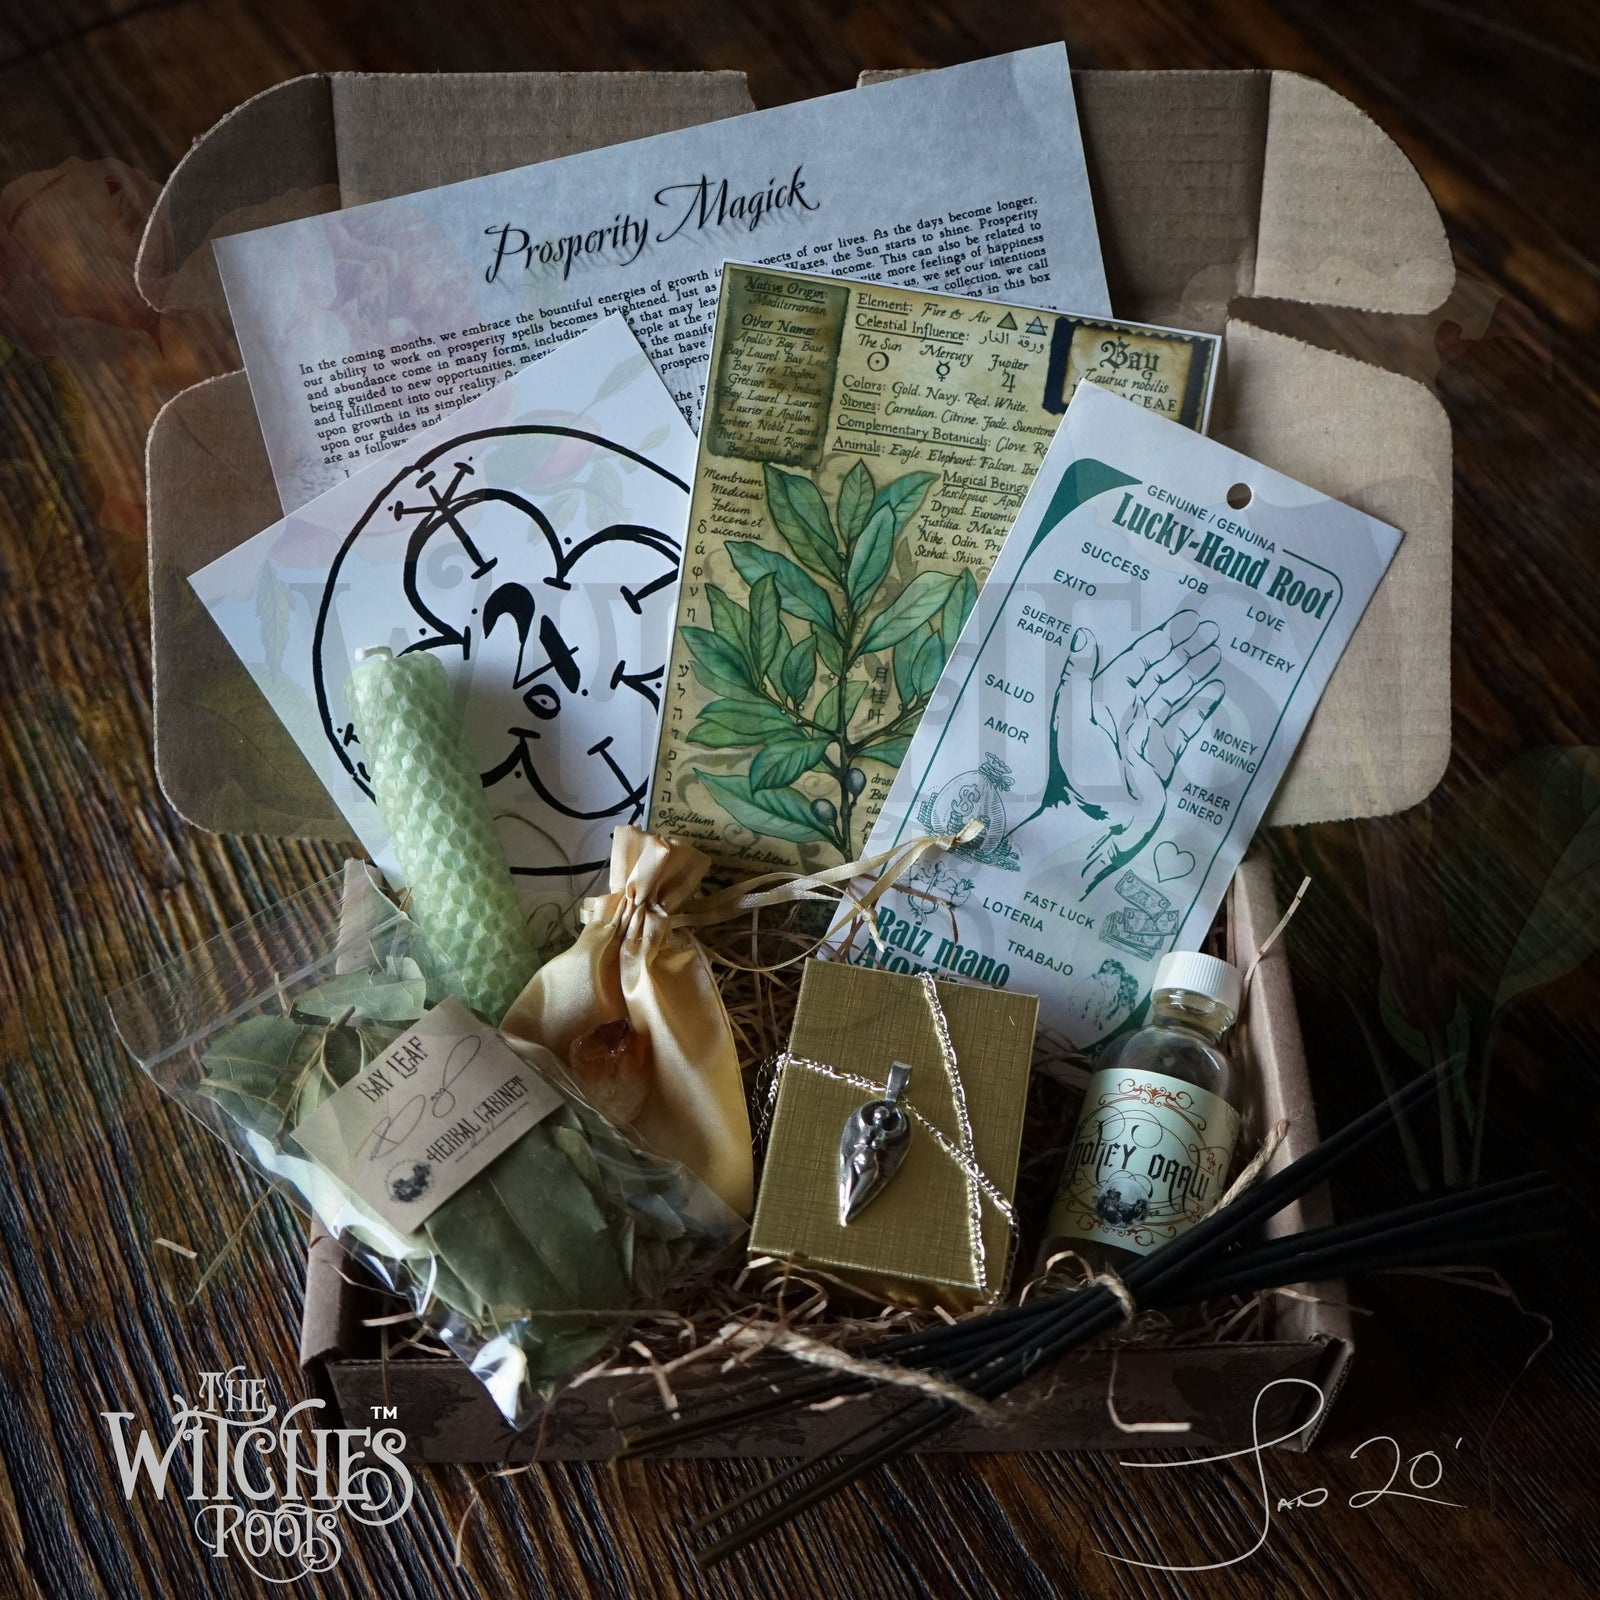 The Witches Roots™ - Prosperity Magick - January 2020